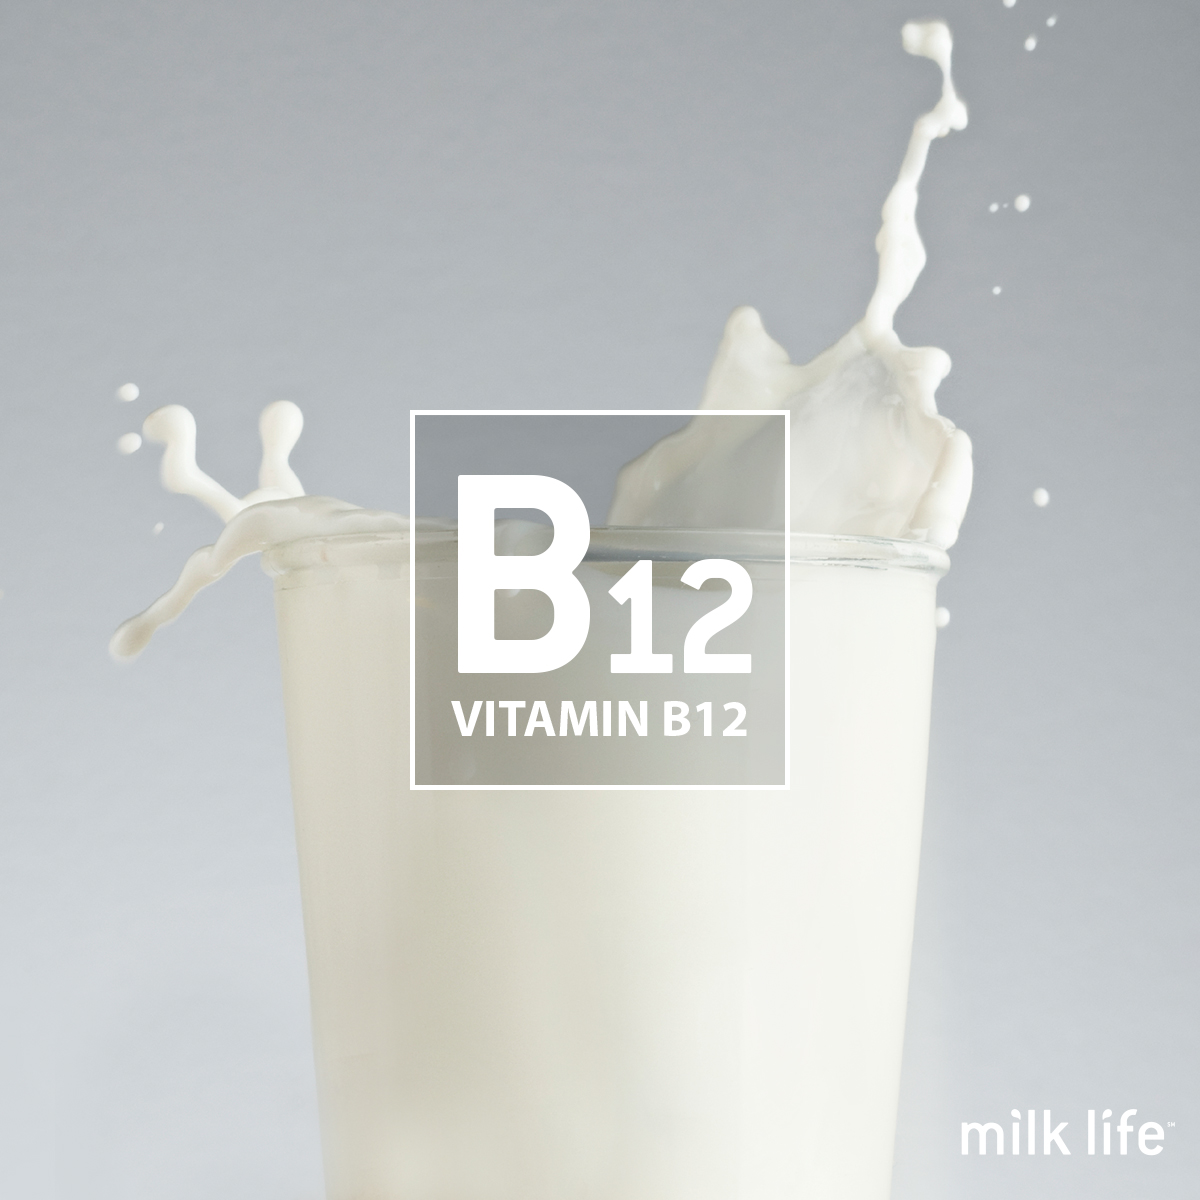 Vitamin B12 is a nutrient in milk